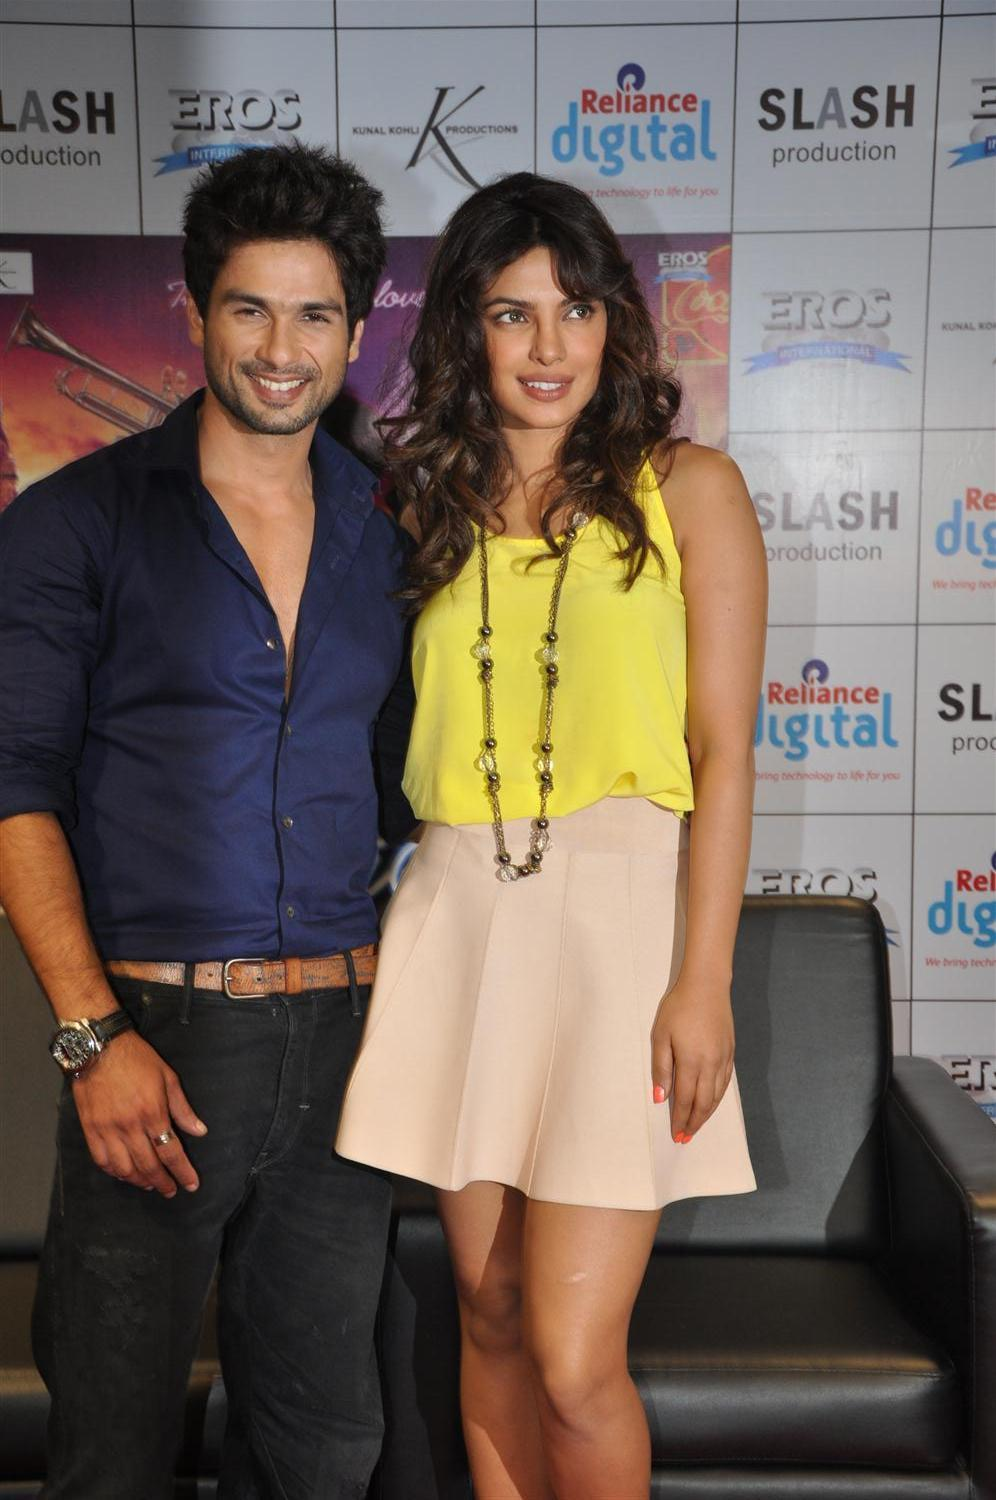 Shahid Kapoor and Priyanka Chopra Pictures 2015